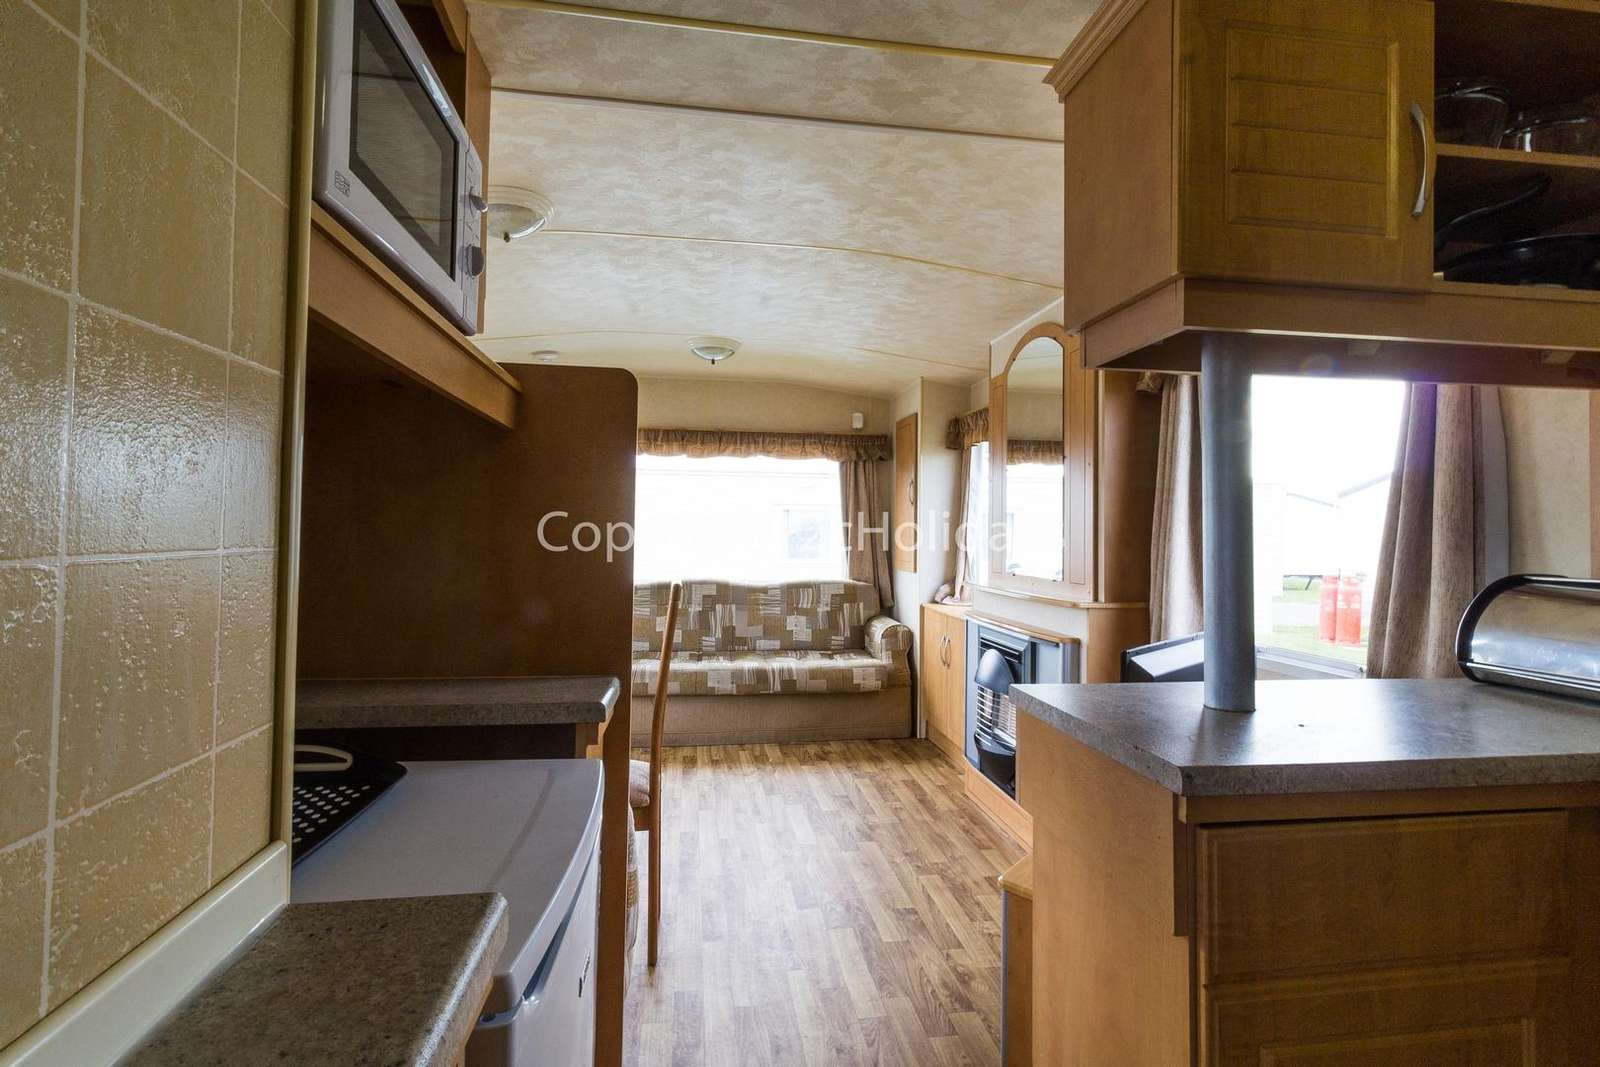 A very spacious caravan with a full size cooker!